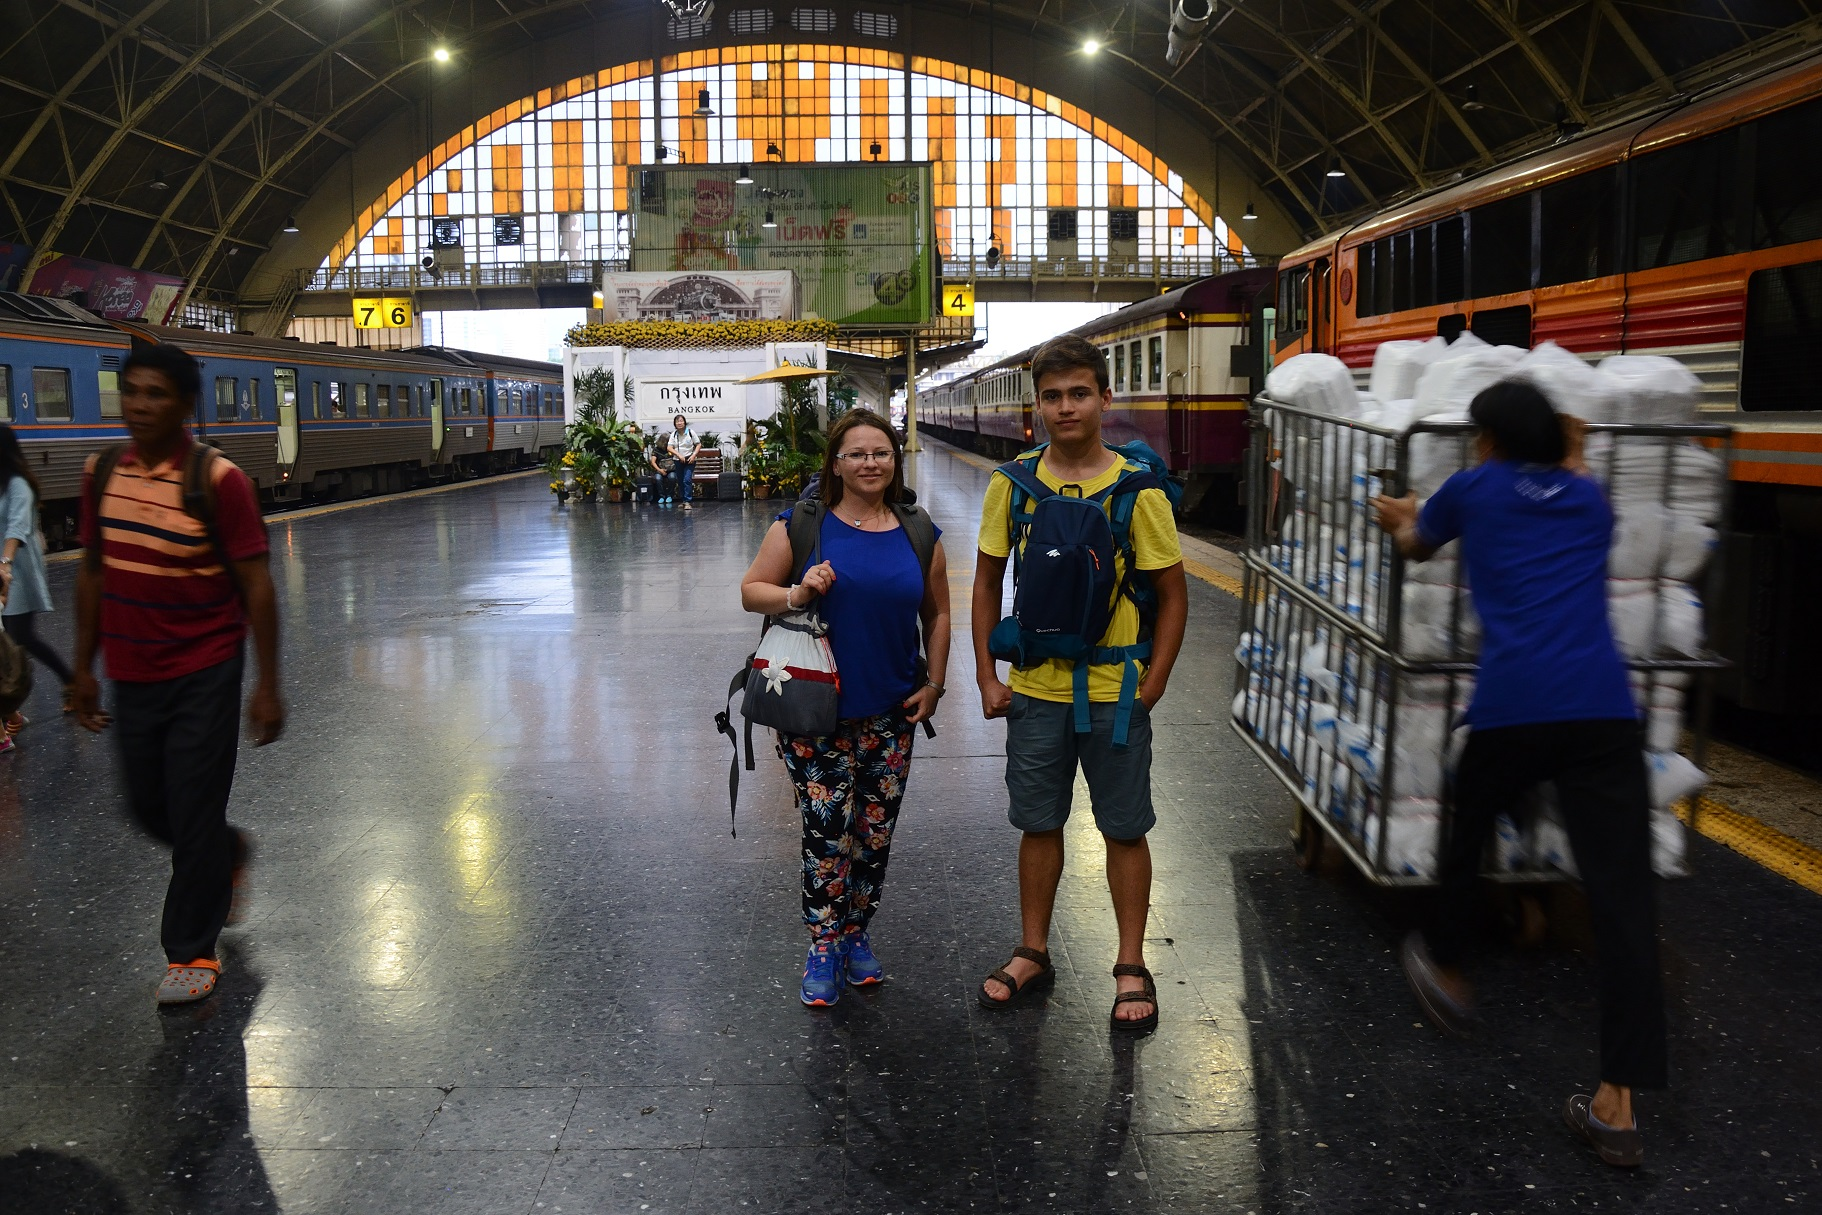 A quick photo at Bangkok's Hualamphong railway station.